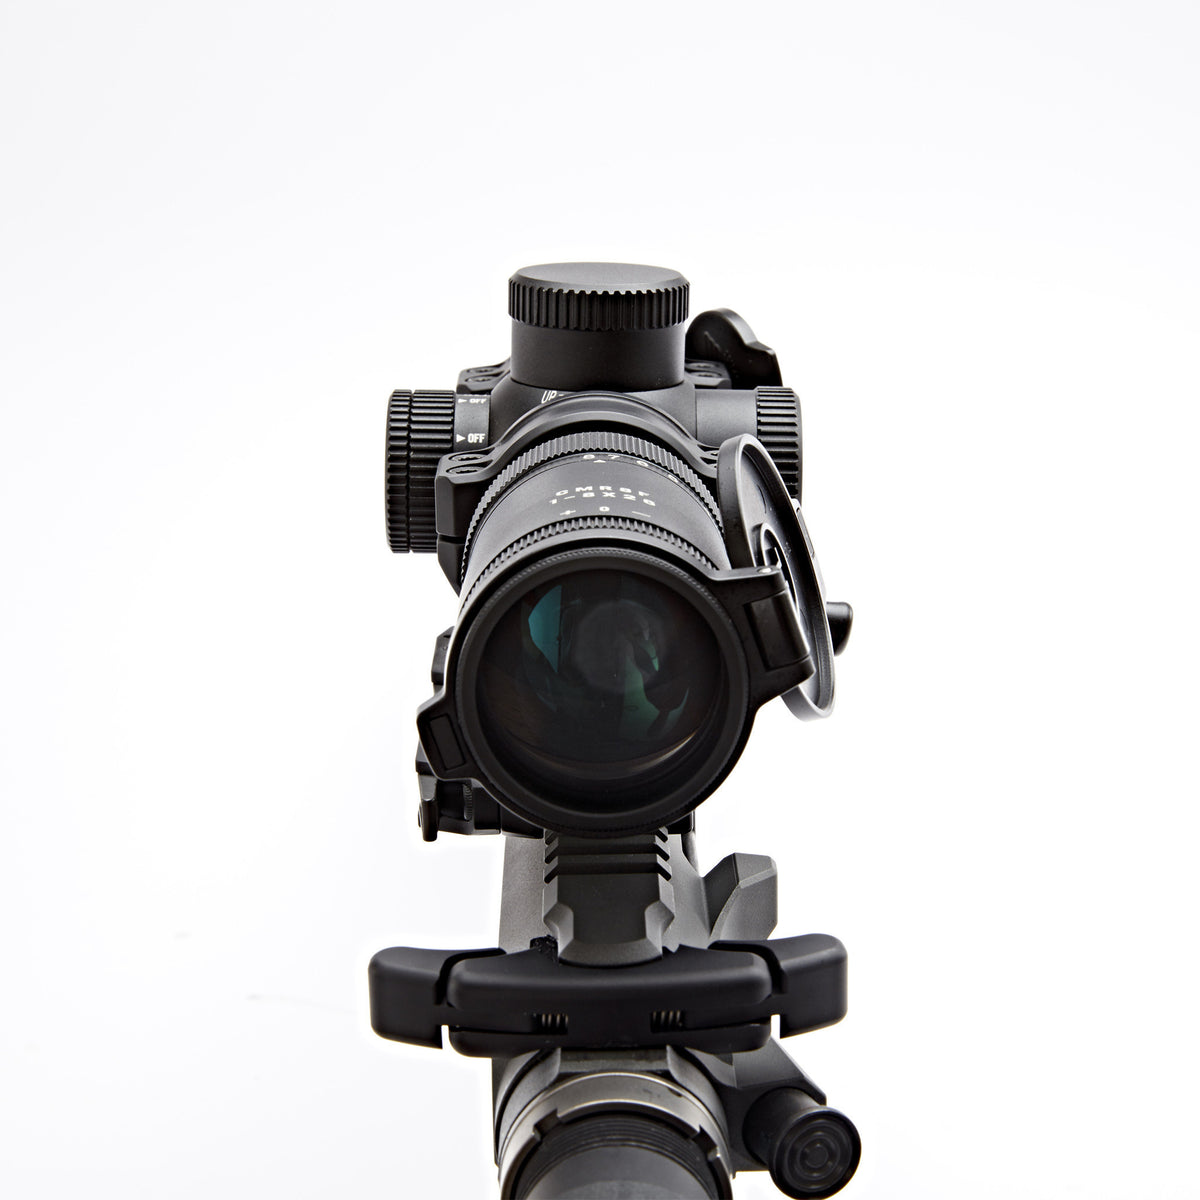 CMR8 FFP EP View mounted on TYR TD-15